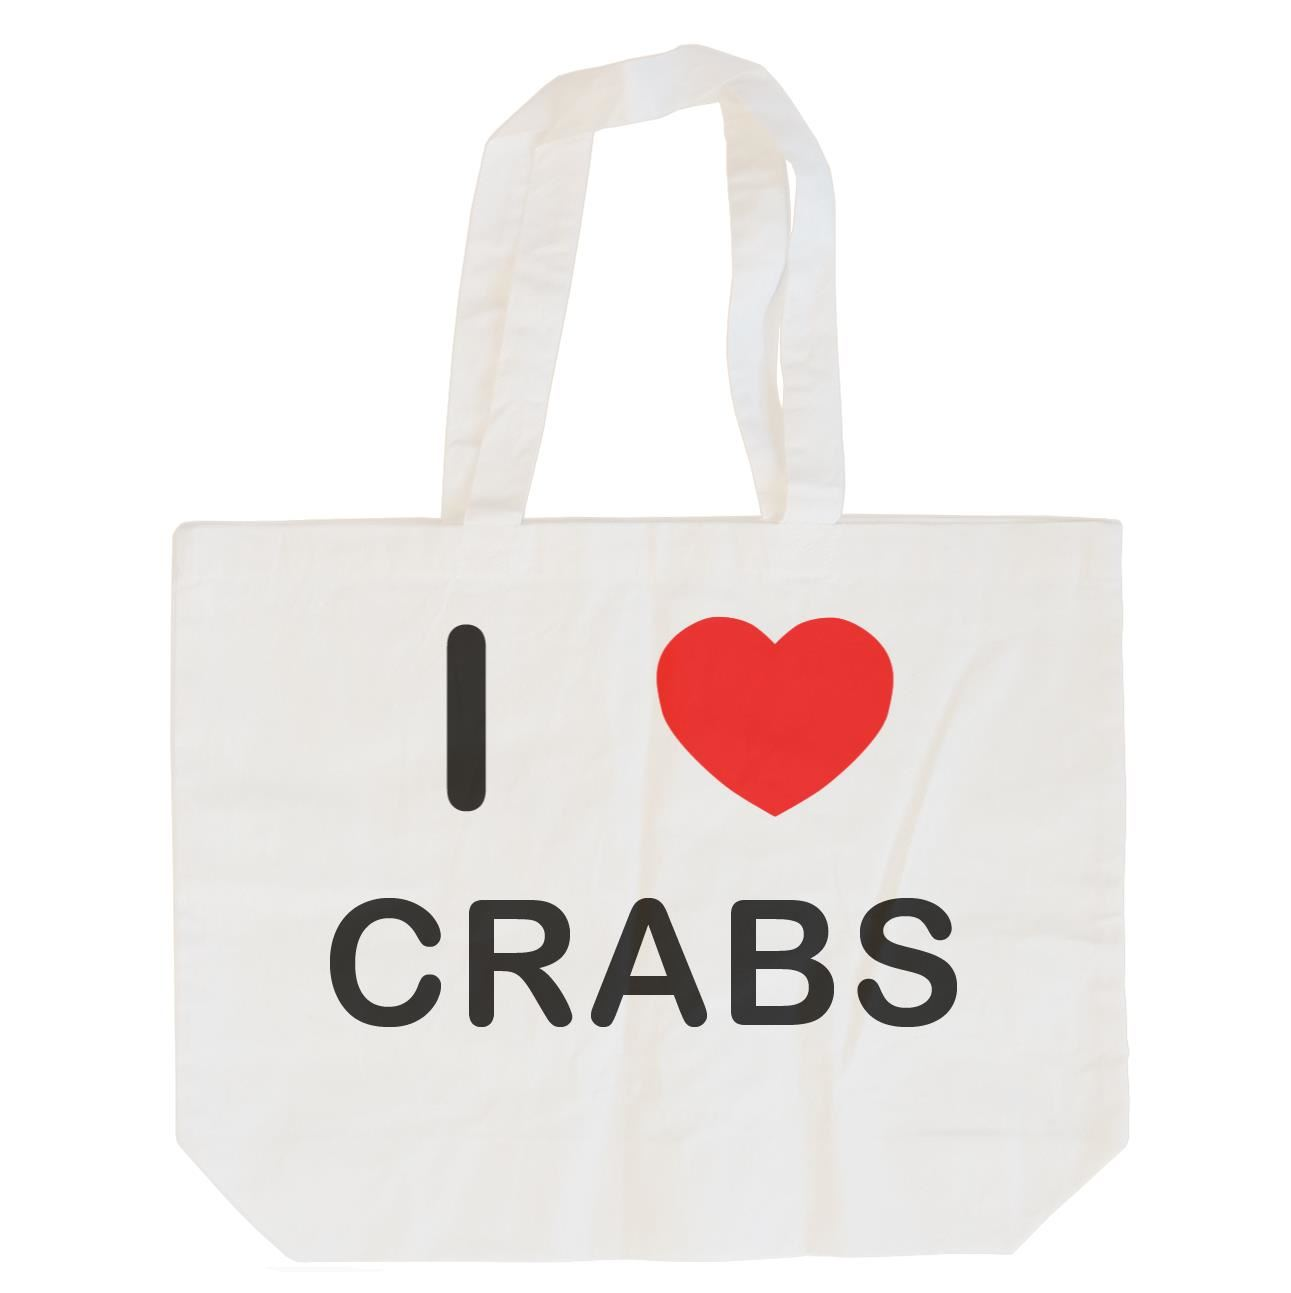 I Love Crabs - Cotton Bag | Size choice Tote, Shopper or Sling